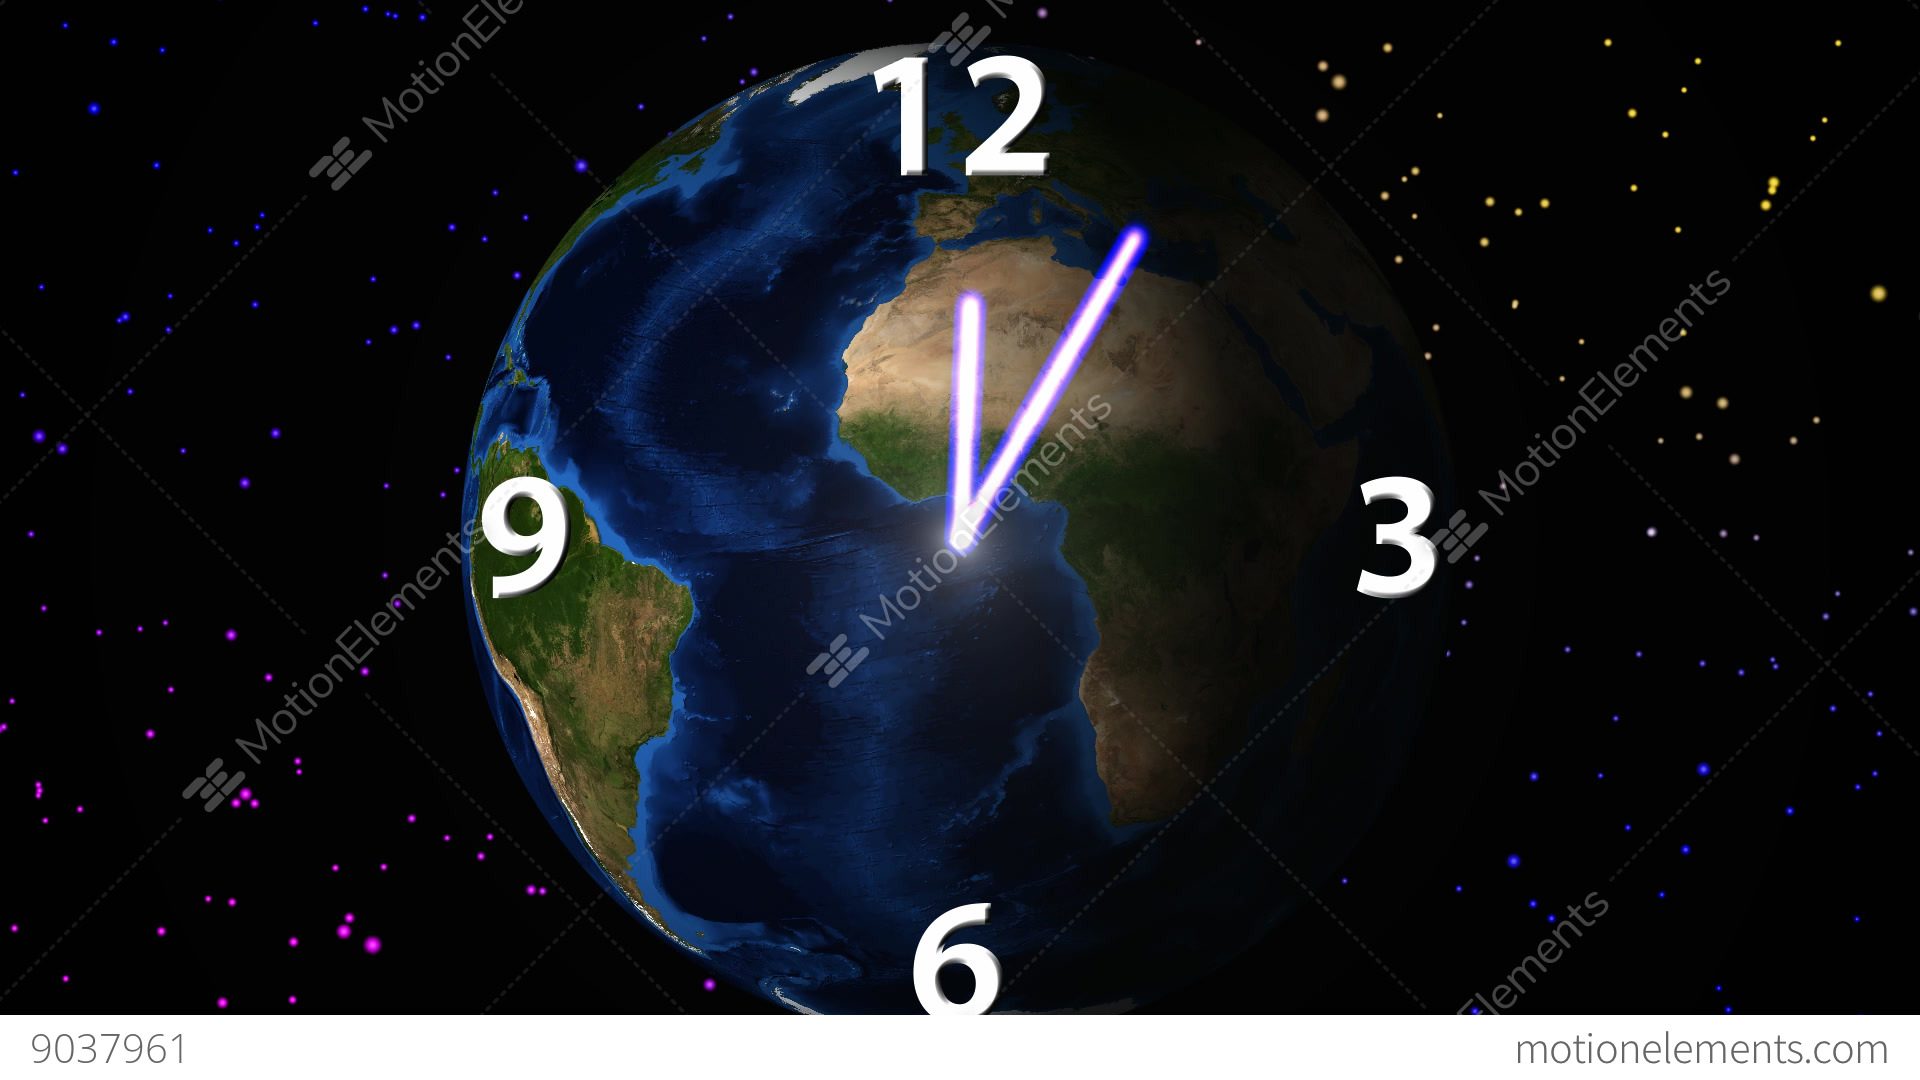 Background image rotate 90 - Time Passage On Rotating Earth Background Stock Video Footage